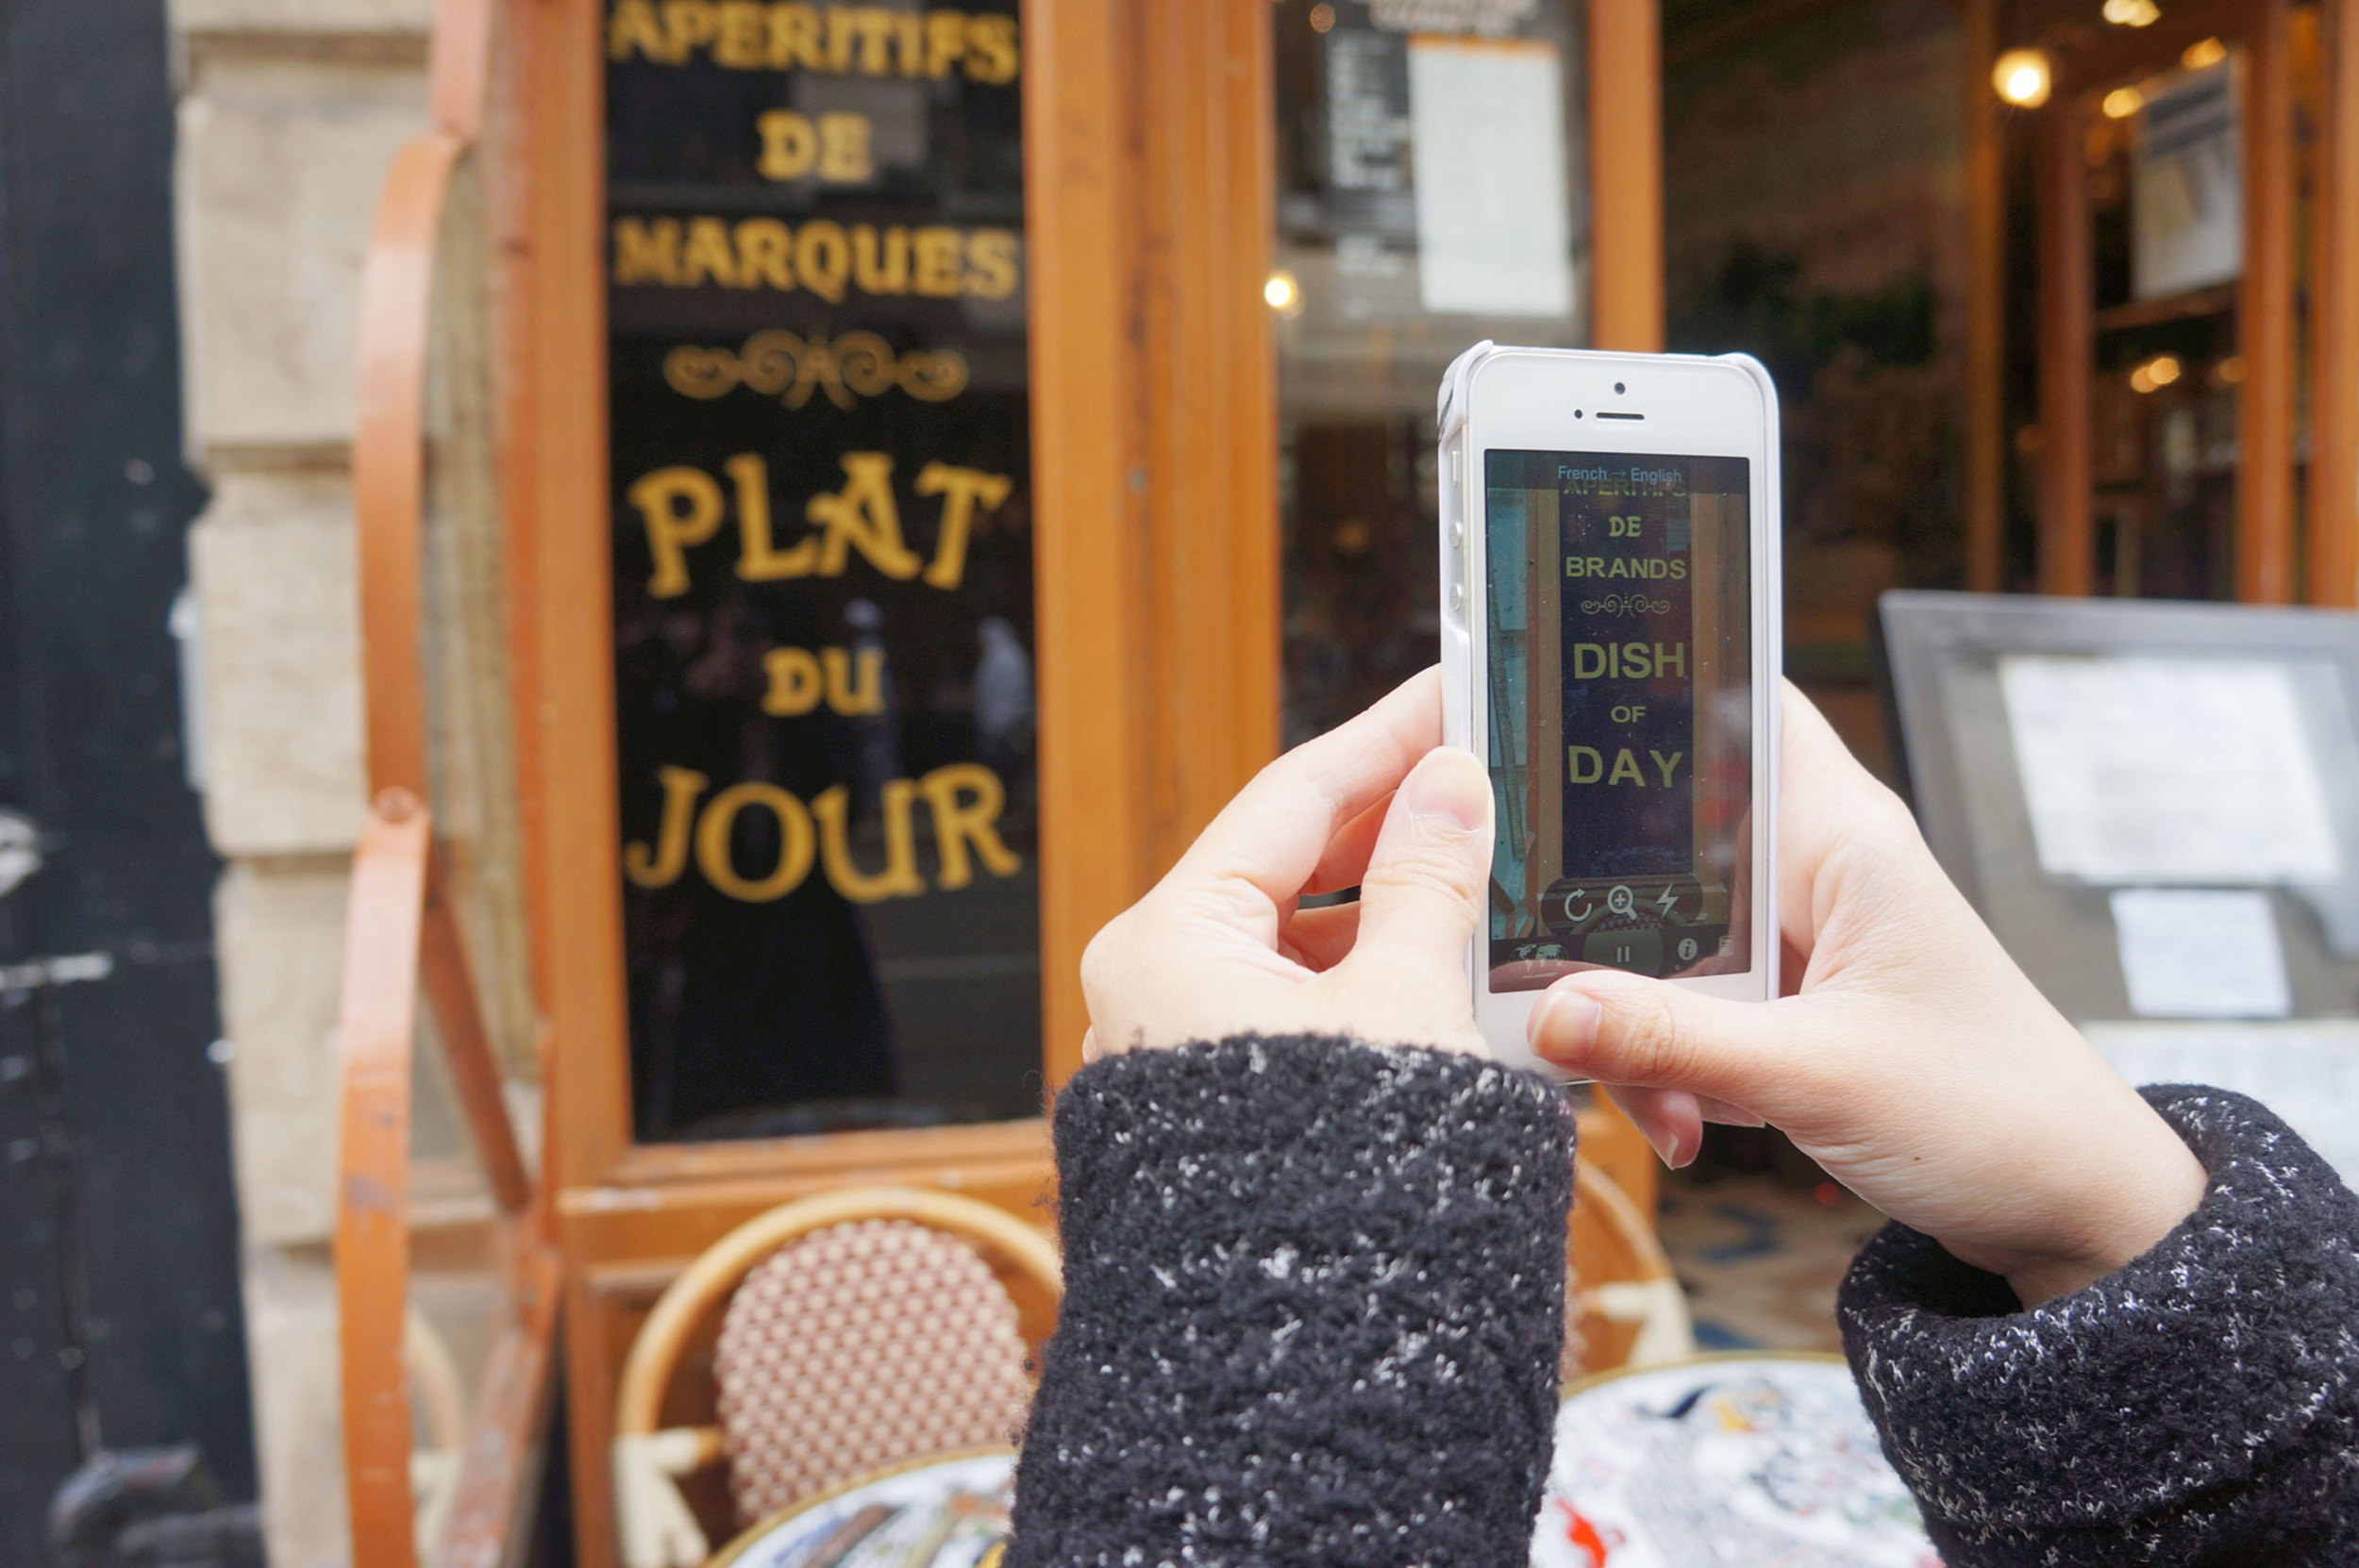 Wordlens  was such a great app in helping us figure out french menus!